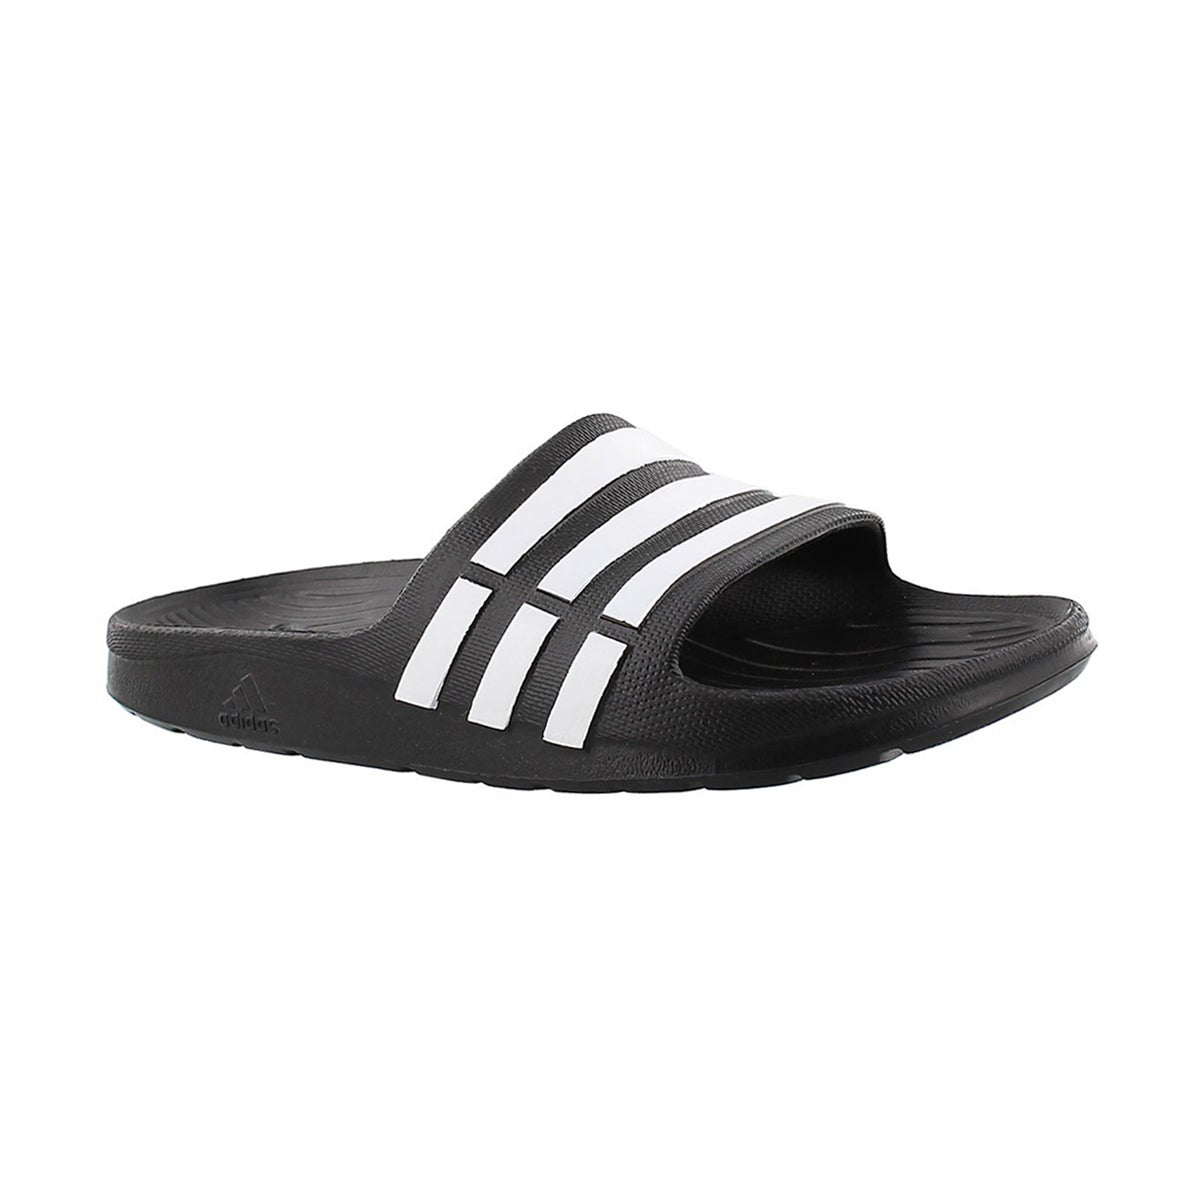 Kids' DURAMO SLIDE black sandals